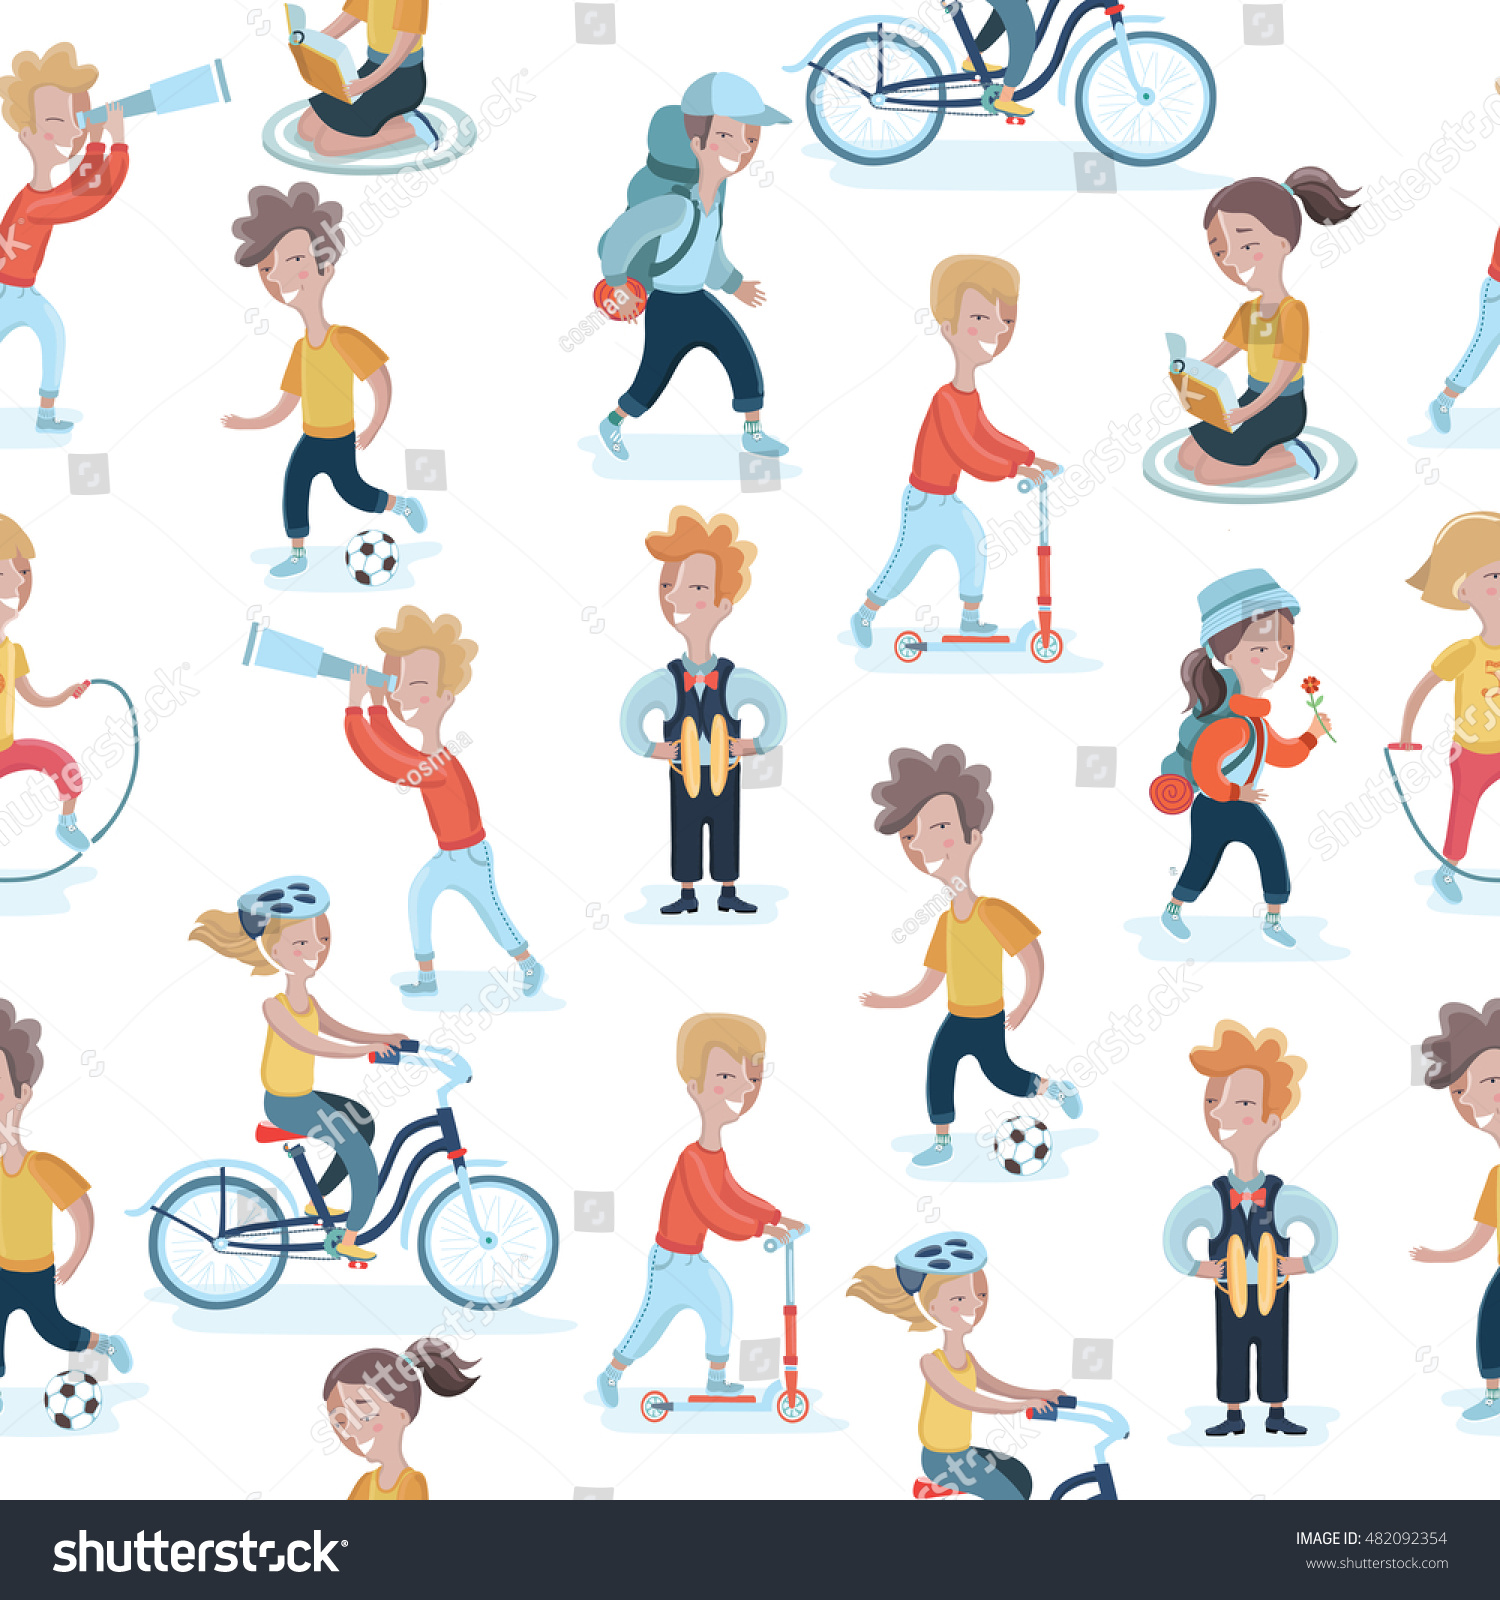 hobbies for kids. vector seamless pattern with children in different actions. kids hobbies background for